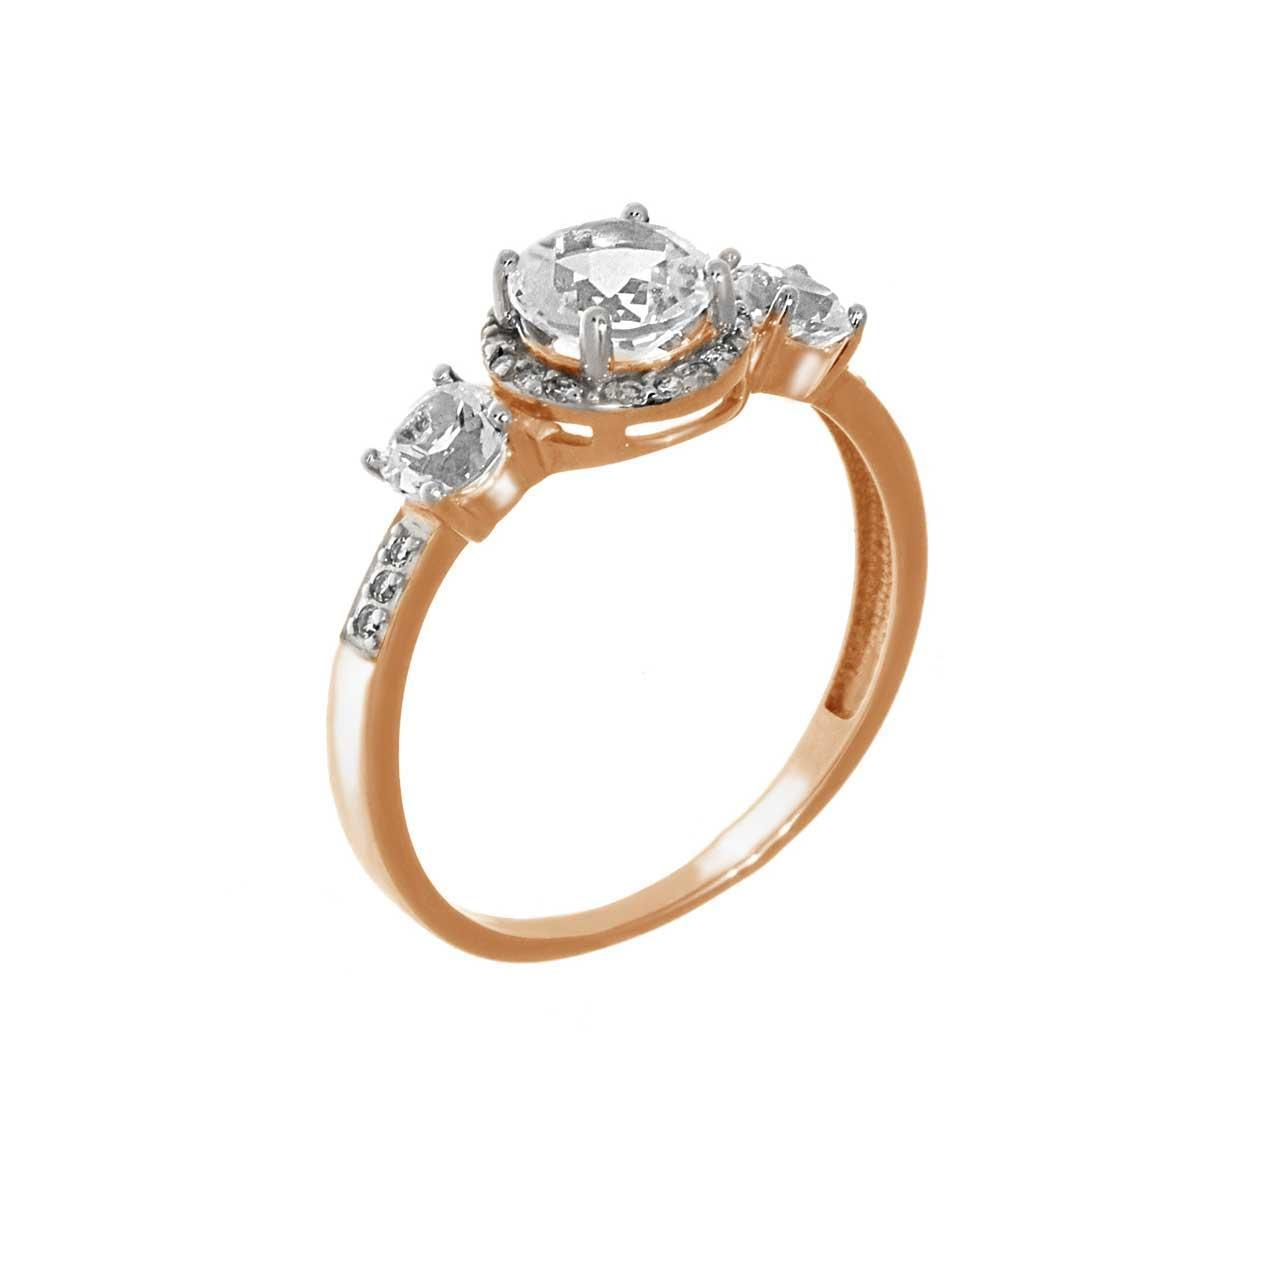 Topaz engagement ring 1